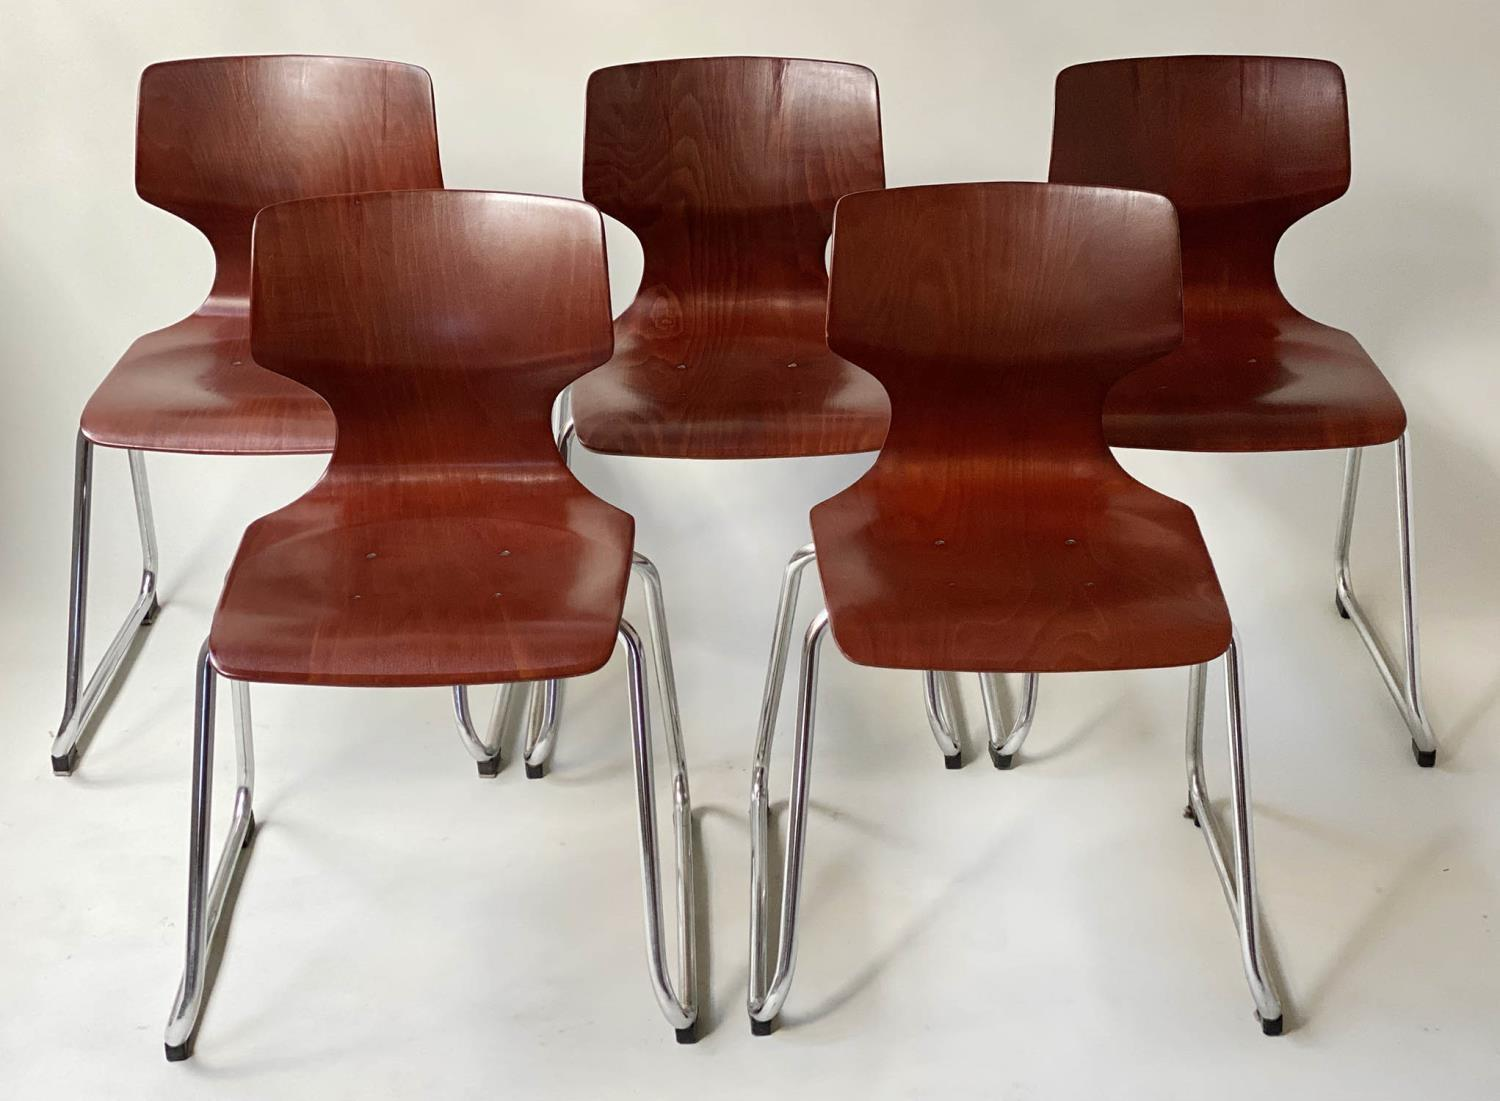 FLOTOTTO PAGHOLZ DINING CHAIRS, a set of five, by Elmar Flototto, 78cm H. (5)